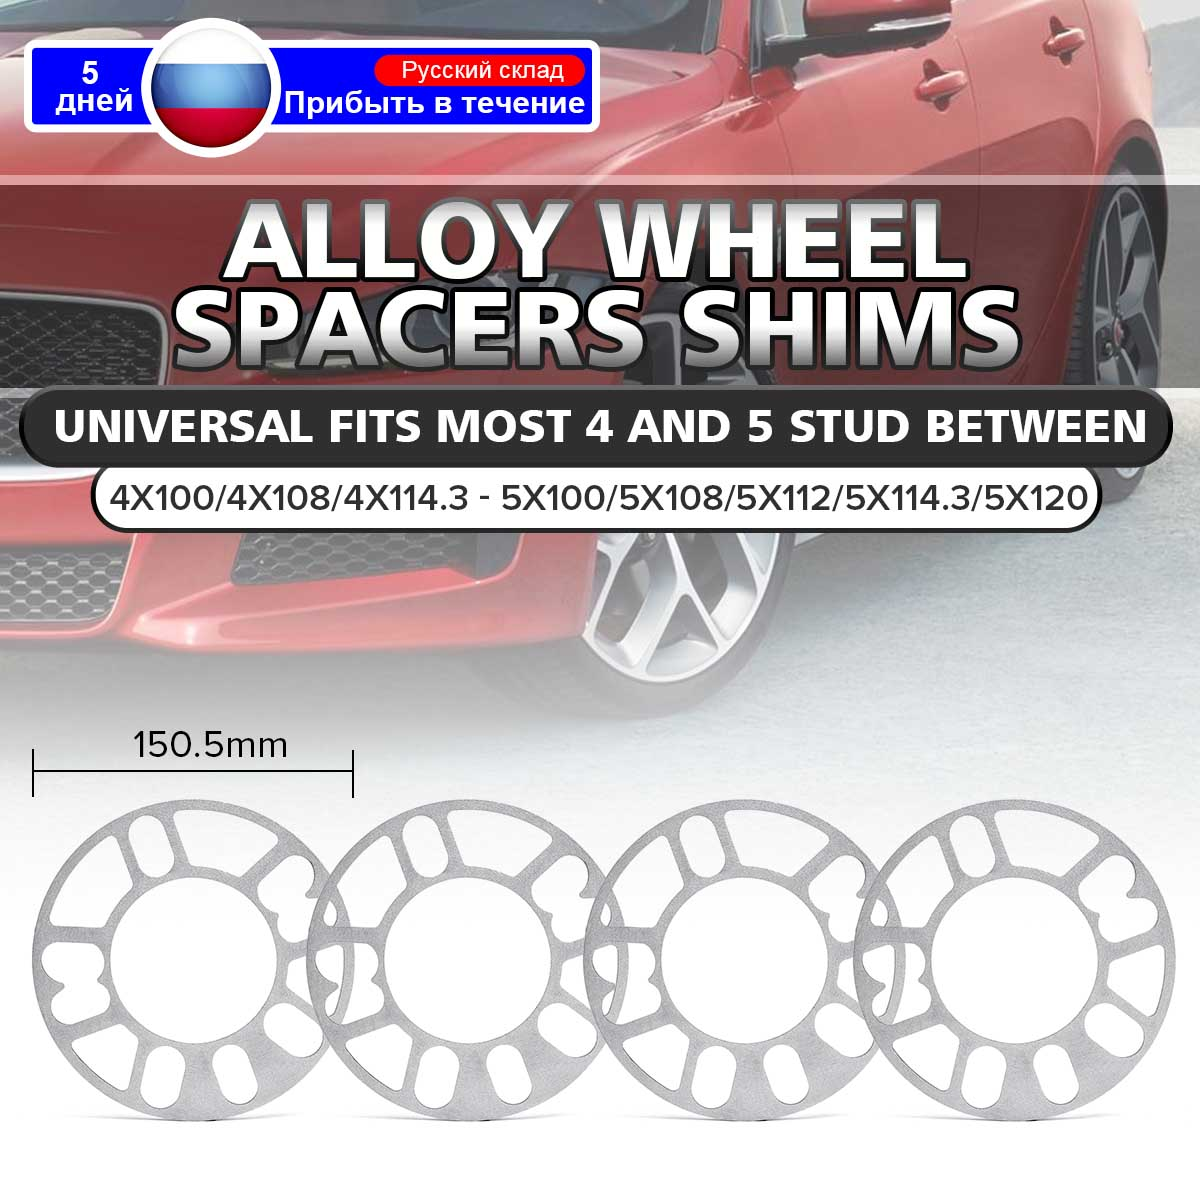 2pcs Aluminum Alloy Wheel Spacers Shims Spacer Universal 5mm for 5 Hole 5x100 5x108 5x112 5x114.3 5x115 5x120 Wheel Spacers